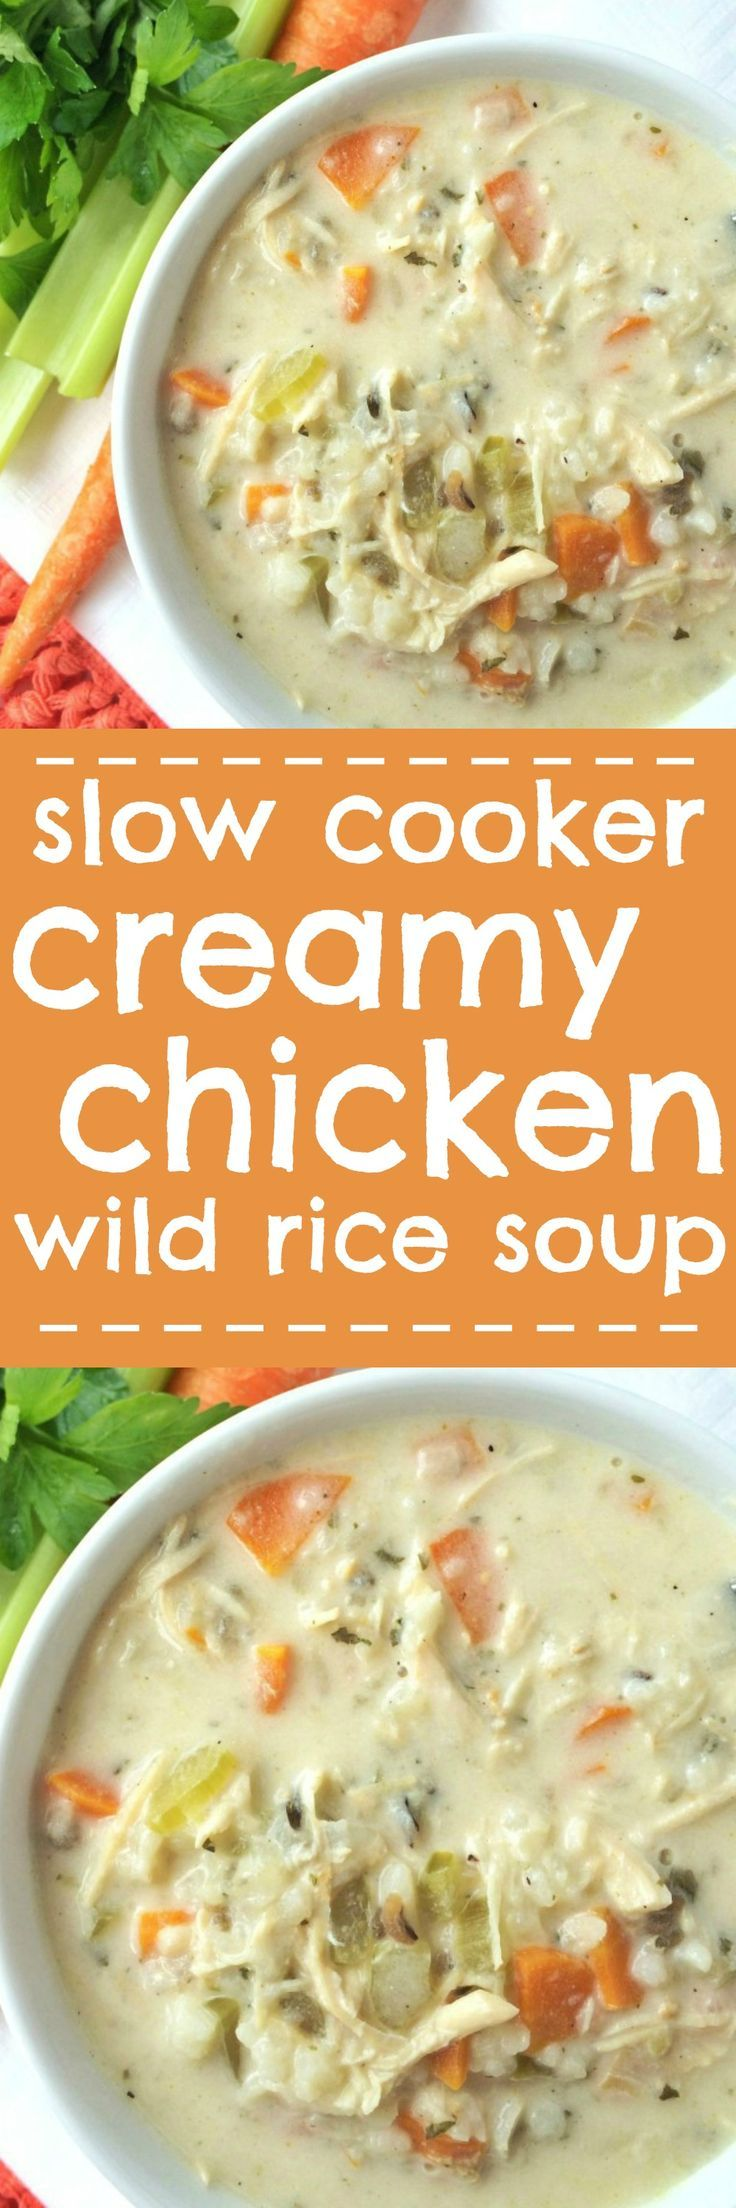 Creamy Chicken Wild Rice Soup - A family favorite recipe for chilly days. Creamy, flavorful broth loaded with shredded chicken, carrots, celery and wild rice. This cooks all day in the slow cooker and uses a package of rice-a-roni for convenience. This st